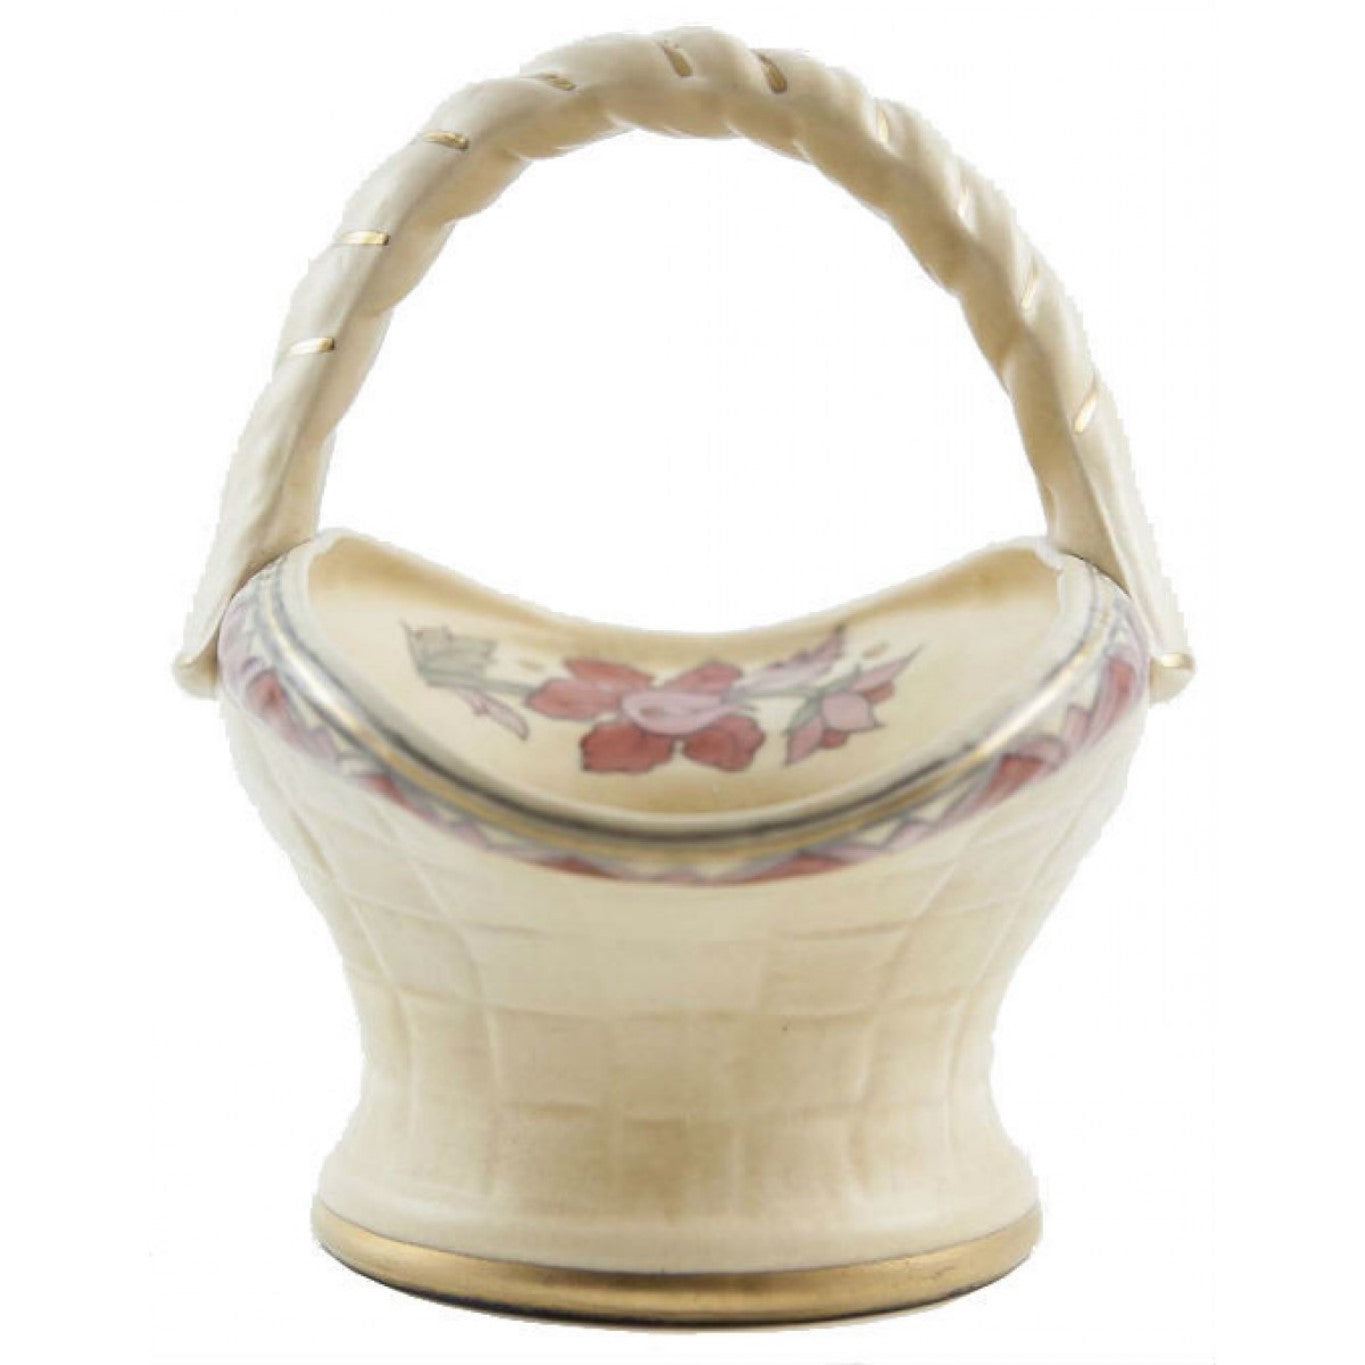 Floral ceramic basket